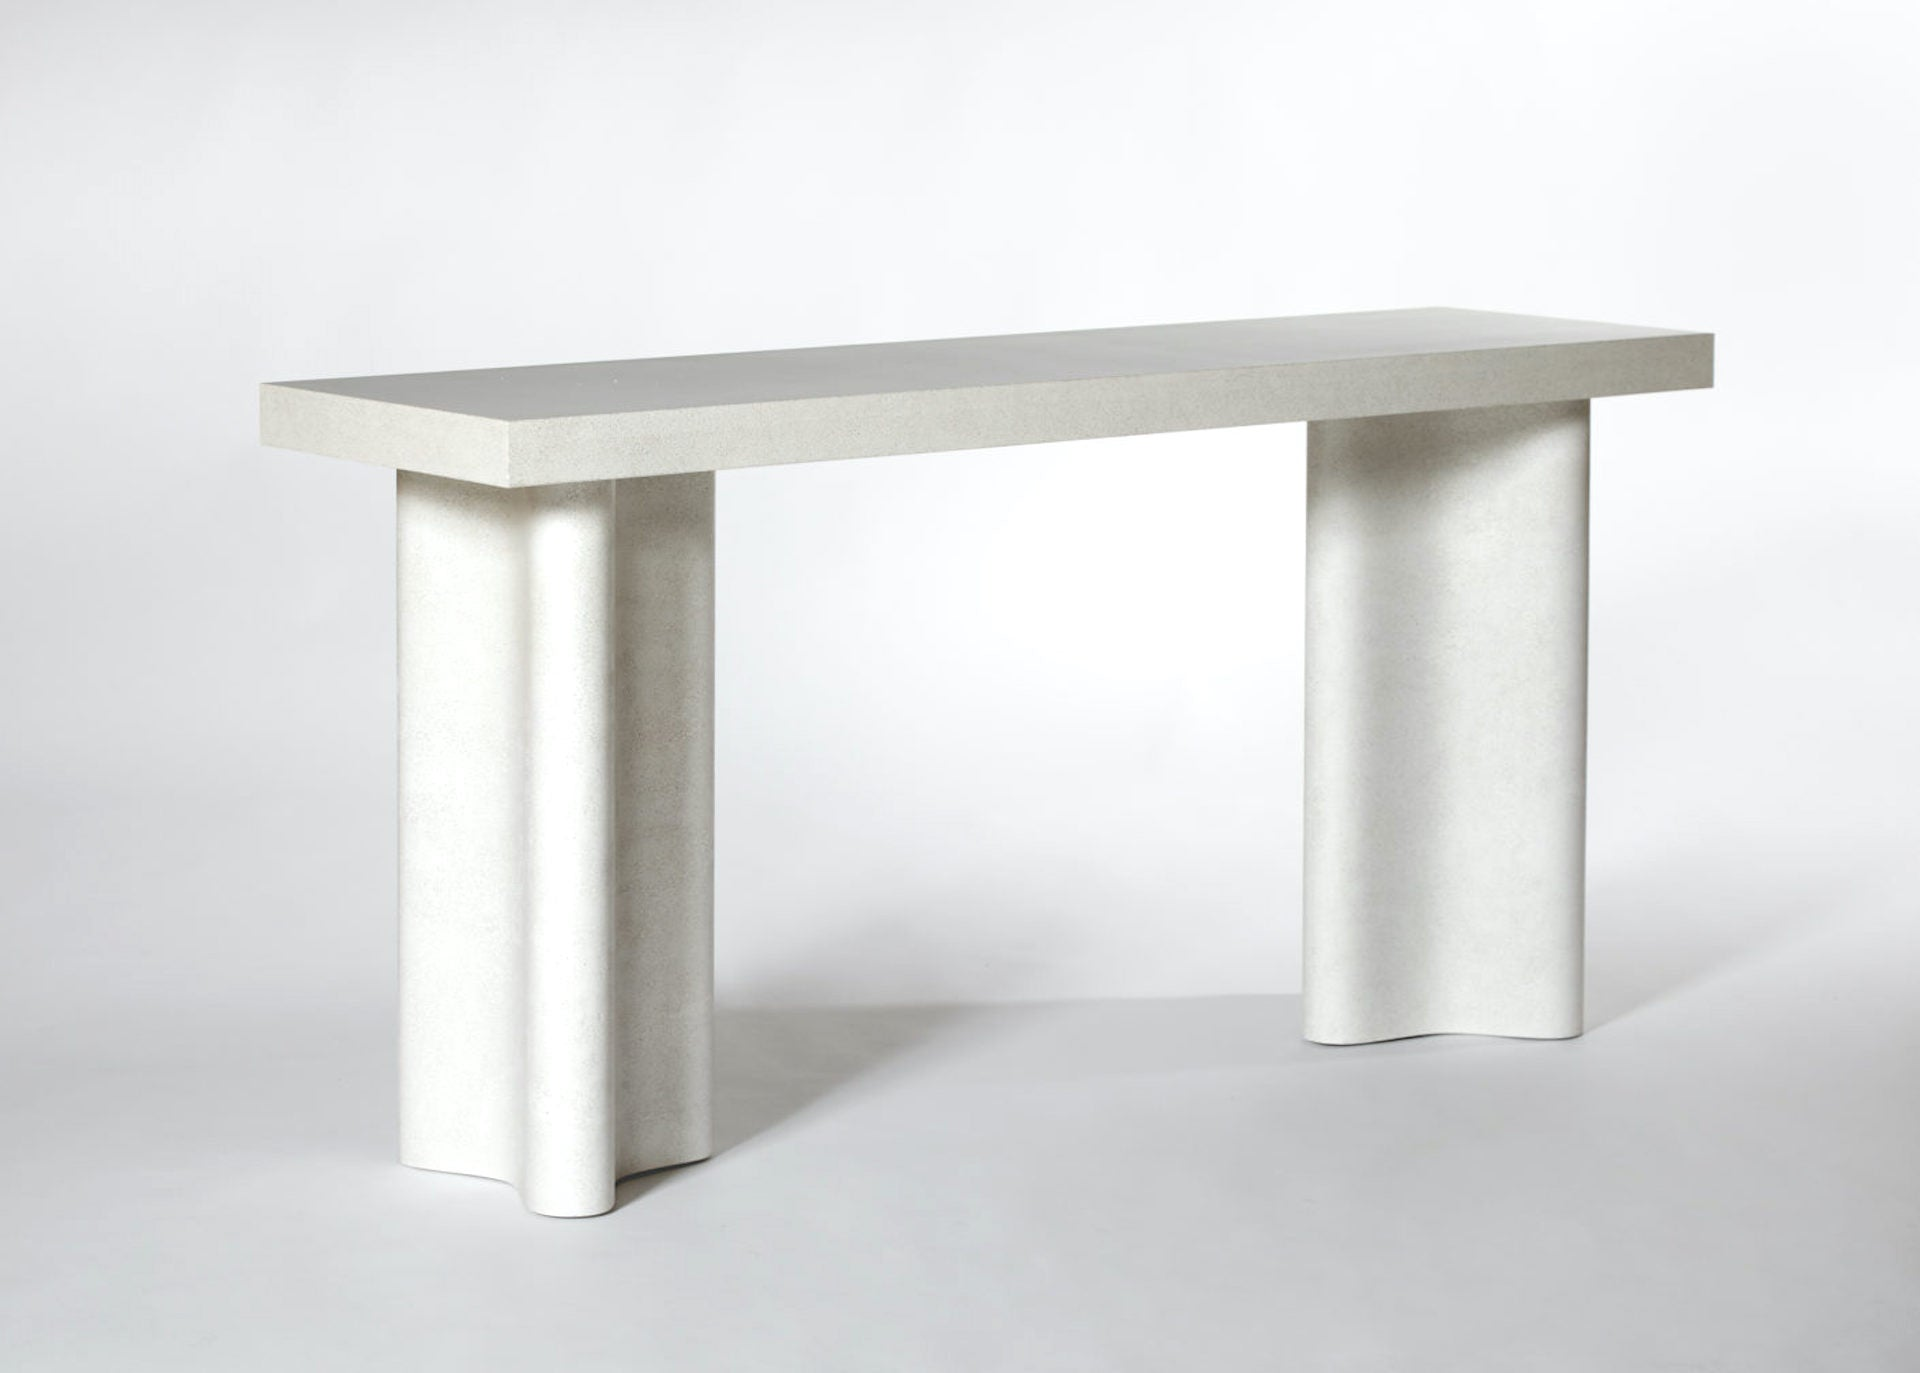 Azo Console by François Bauchet for Galerie kreo. Photo © Sylvie Chan-Liat; Courtesy of Galerie kreo